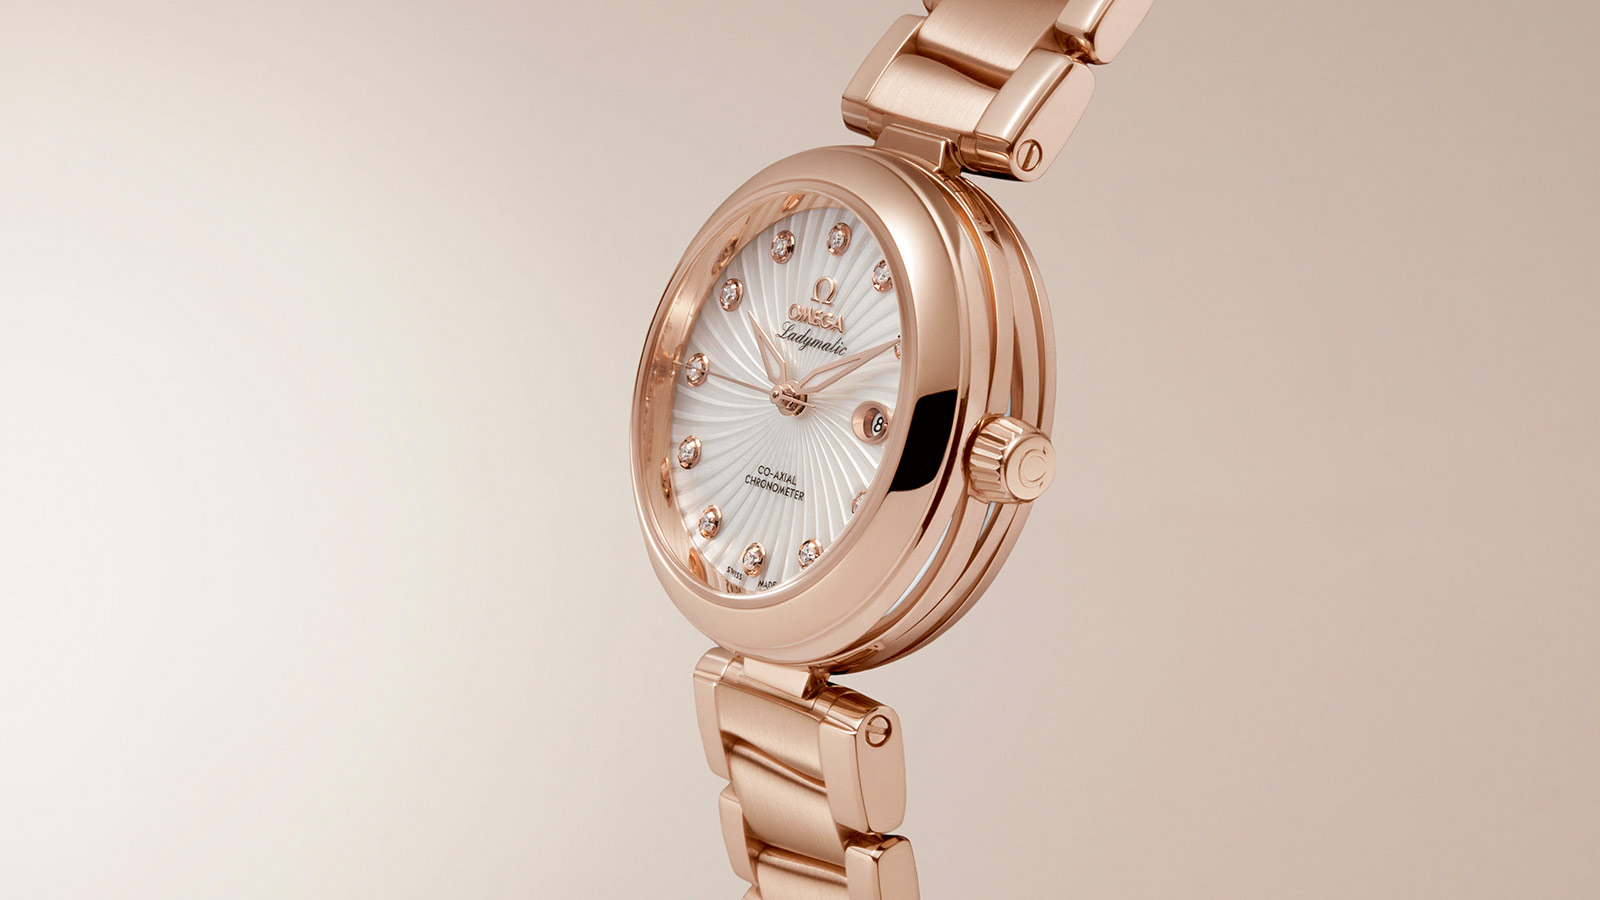 De Ville Ladymatic Ladymatic Omega Co‑Axial 34 mm - 425.60.34.20.55.001 - View 2